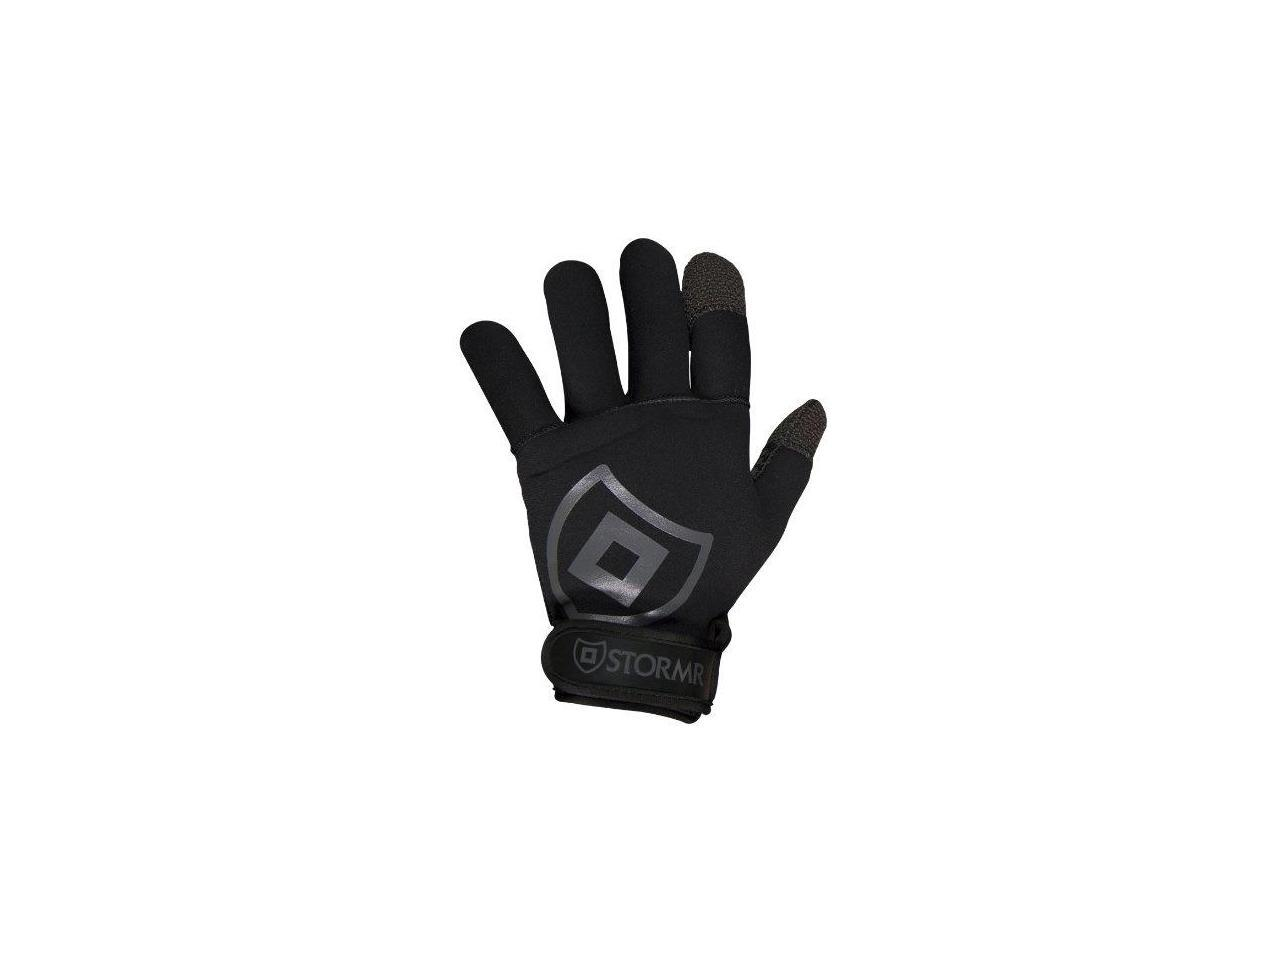 Fully Lined Micro-Fleece Gloves with Adjustable Wrist Closures and Foul Weather Ideal for Ice Fishing STORMR Strykr 2mm Neoprene Mens and Womens Glove Winter Conditions